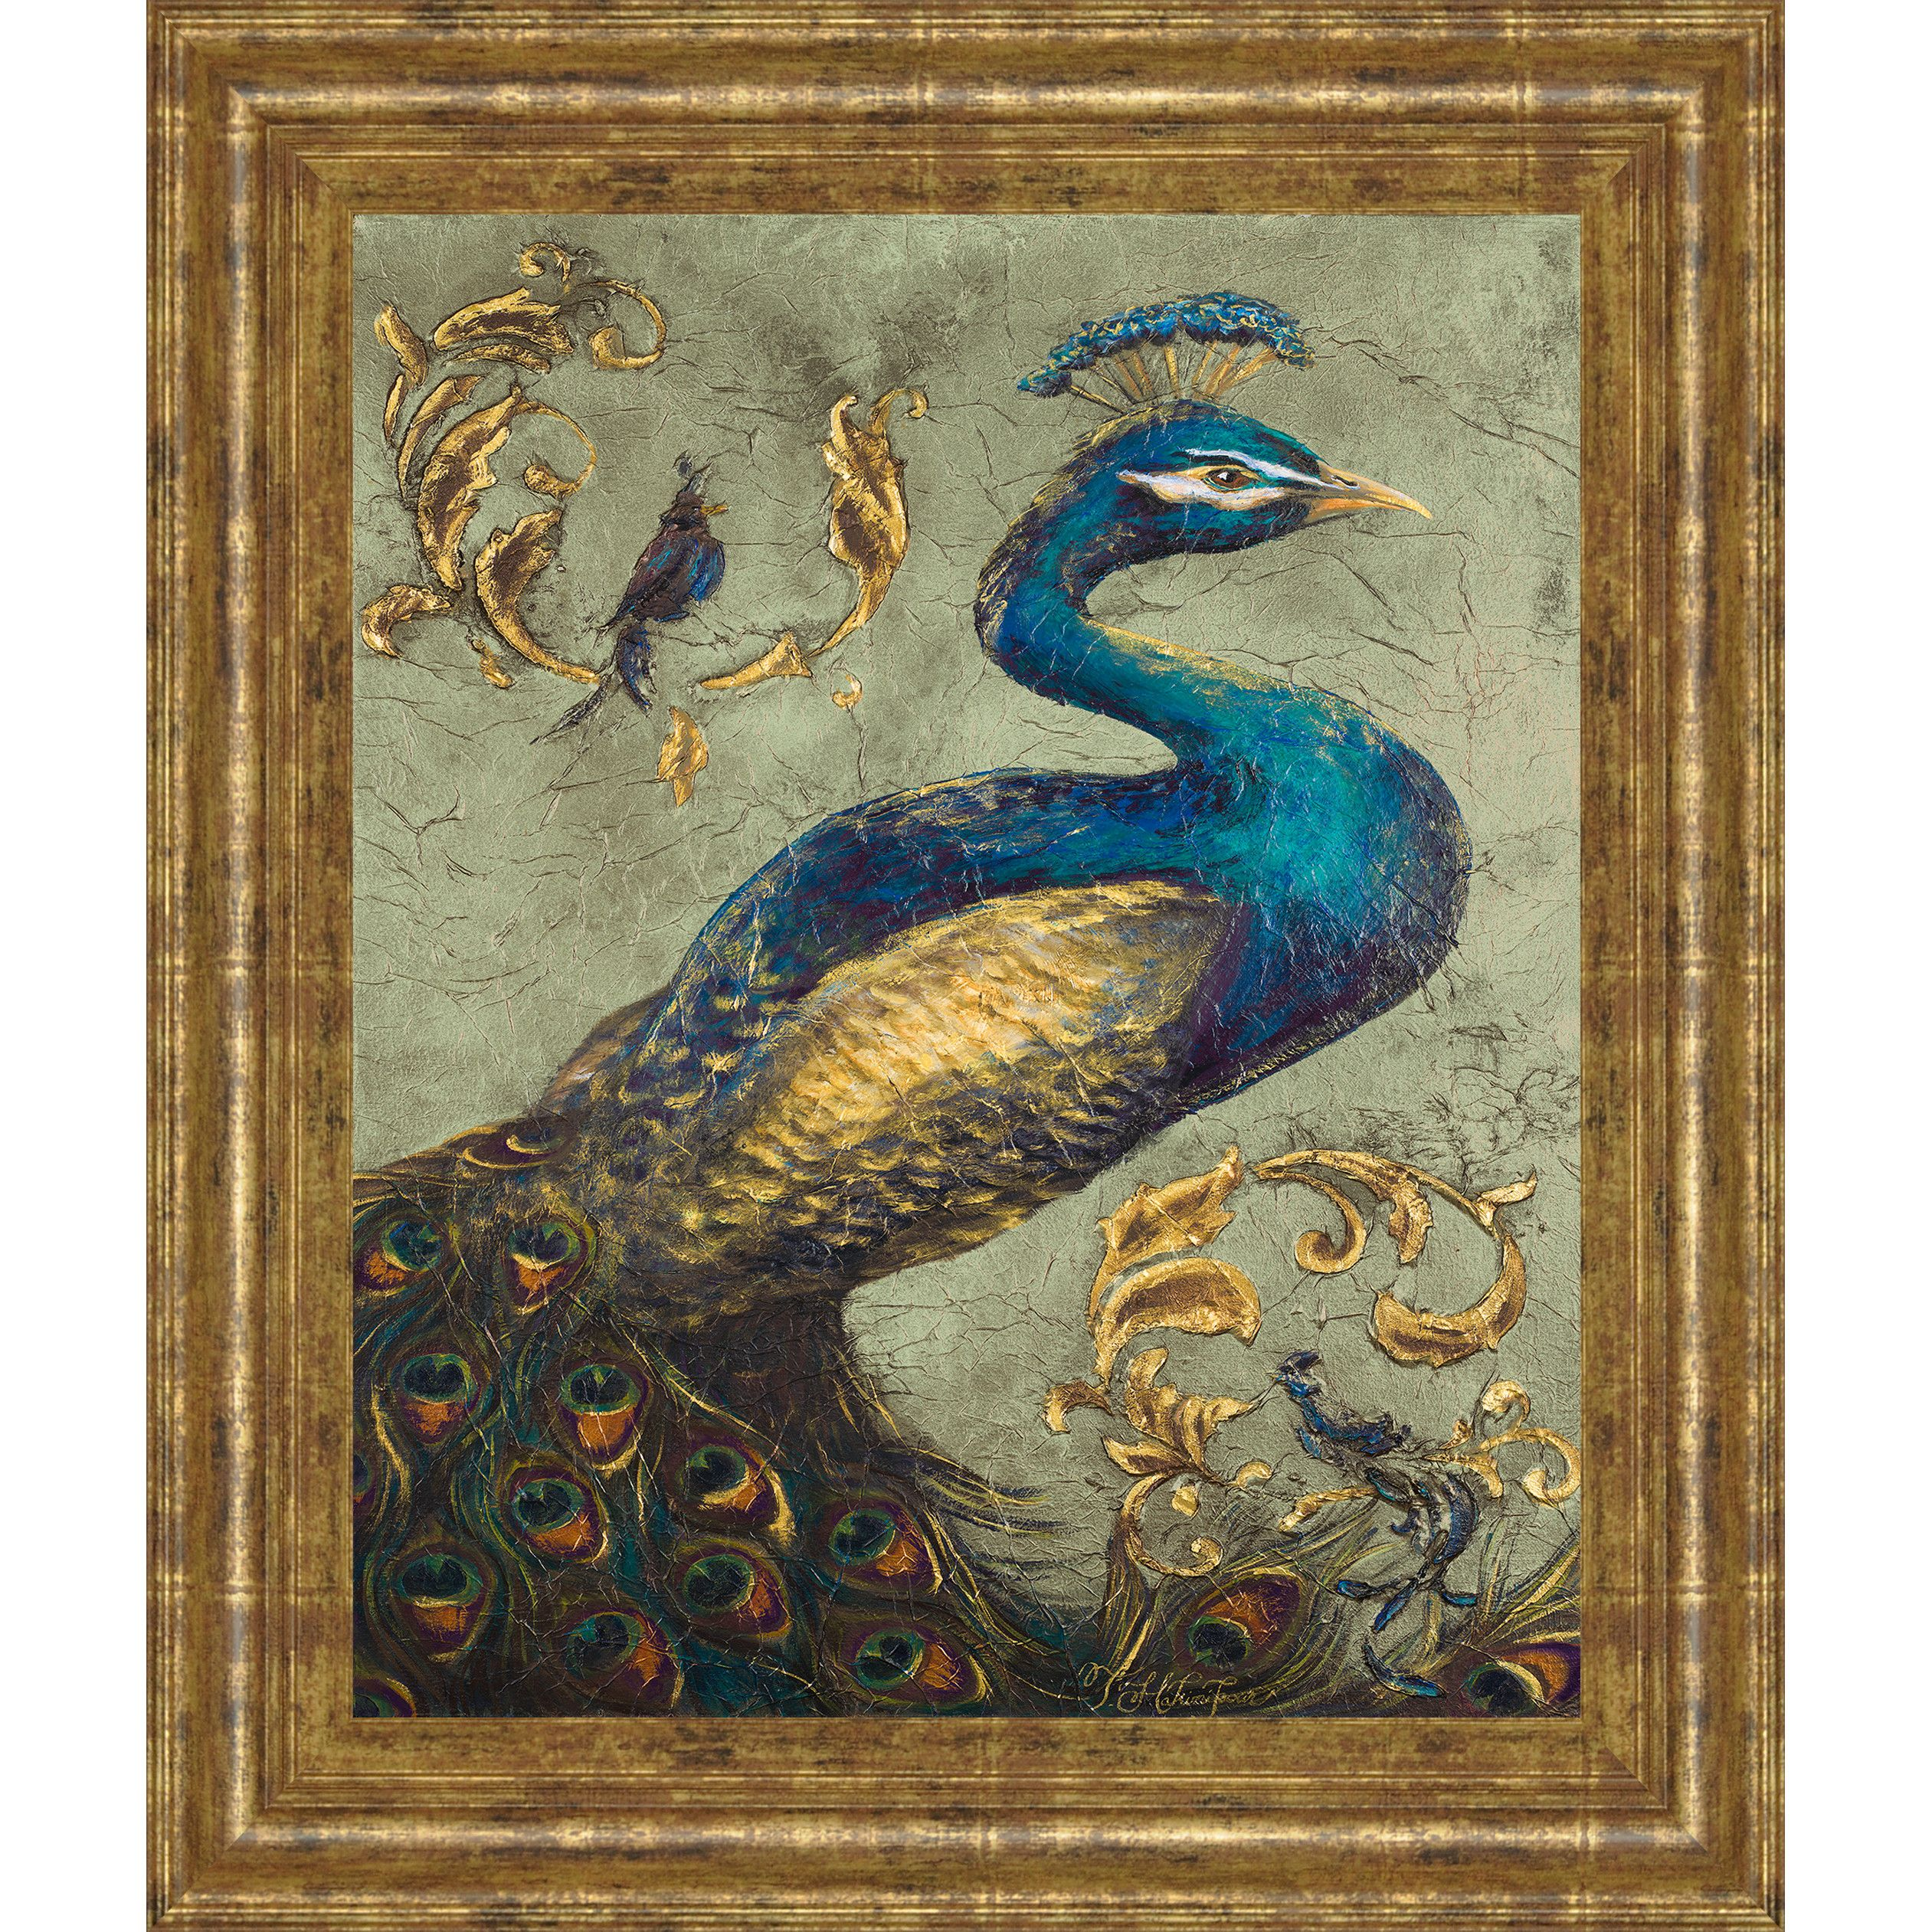 Peacock-on-Sage-I-by-Tiffany-Hakimipour-Framed-Wall-Art-8017.jpg (2522×2522)